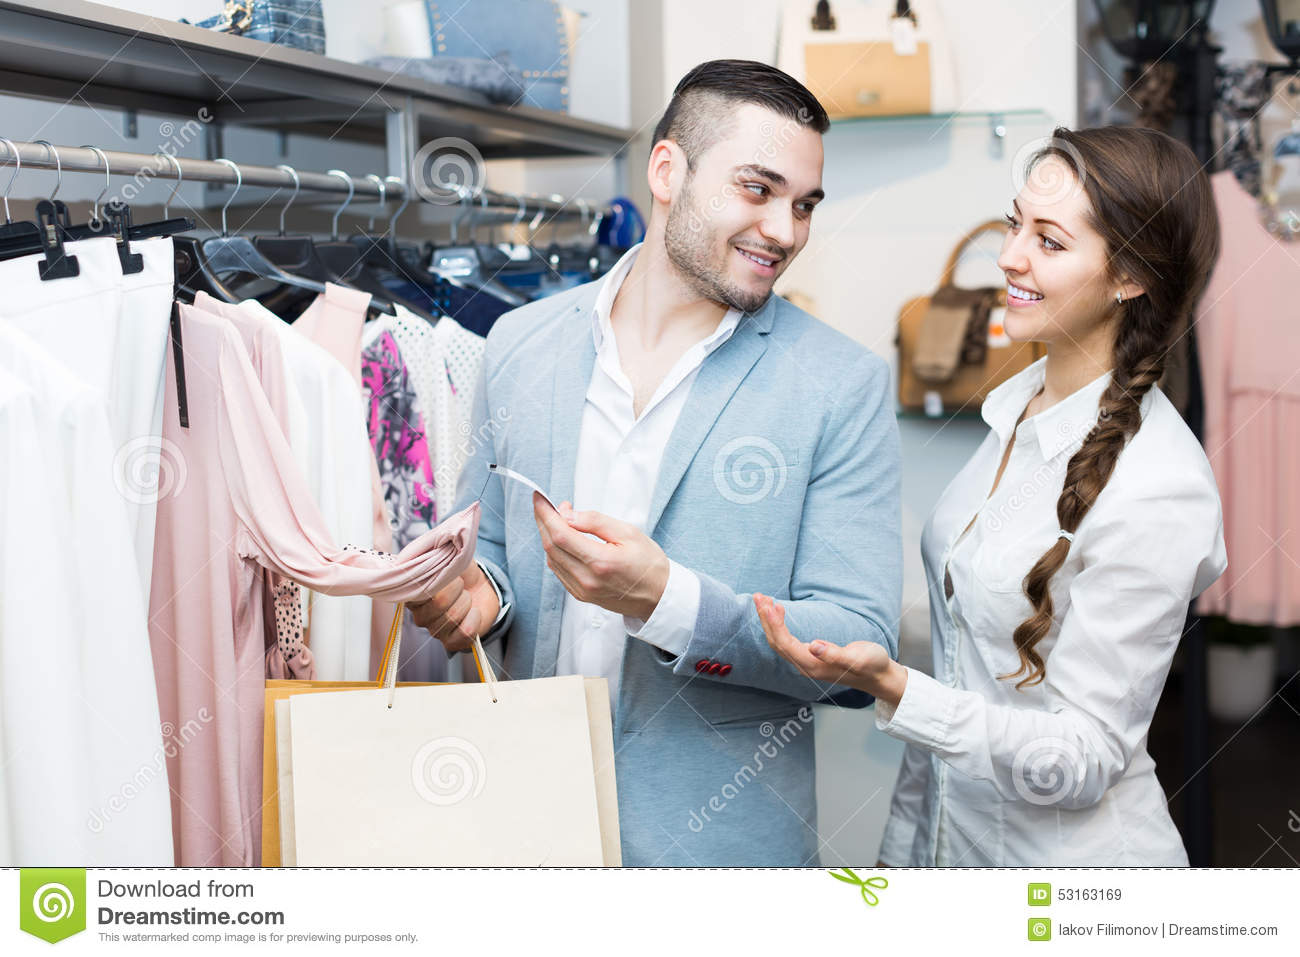 Only,Buying,Carrying,Casual Clothing,Cheerful,Choice,Choosing,Clothes Rail,Clothes Shop,Clothing,Coathanger,Community,Consumerism,Couple - Relationship